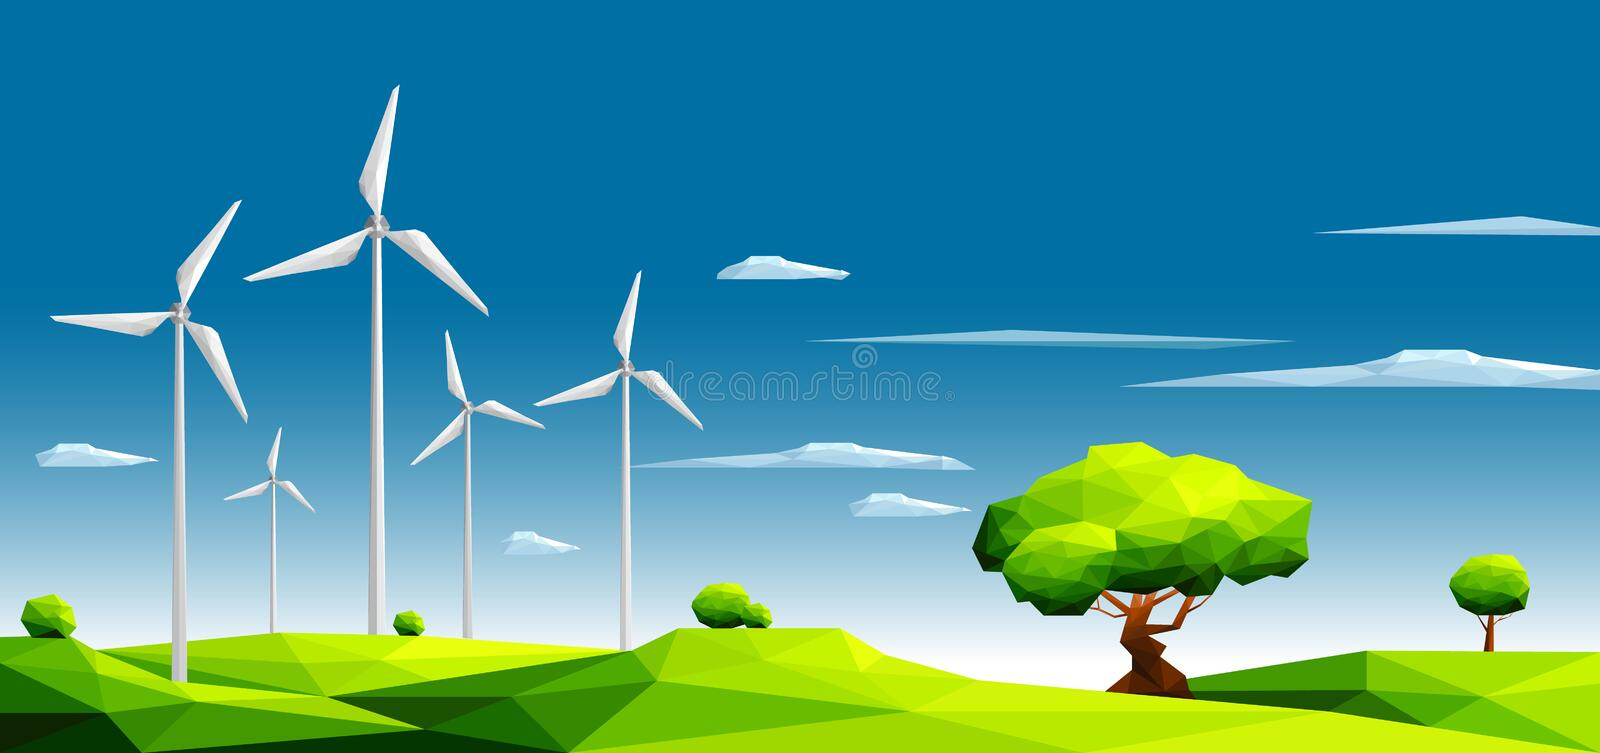 Landscape with wind farm in green fields among trees.Ecology Concept.Polygonal style. Eps10 Vector Illustration royalty free illustration